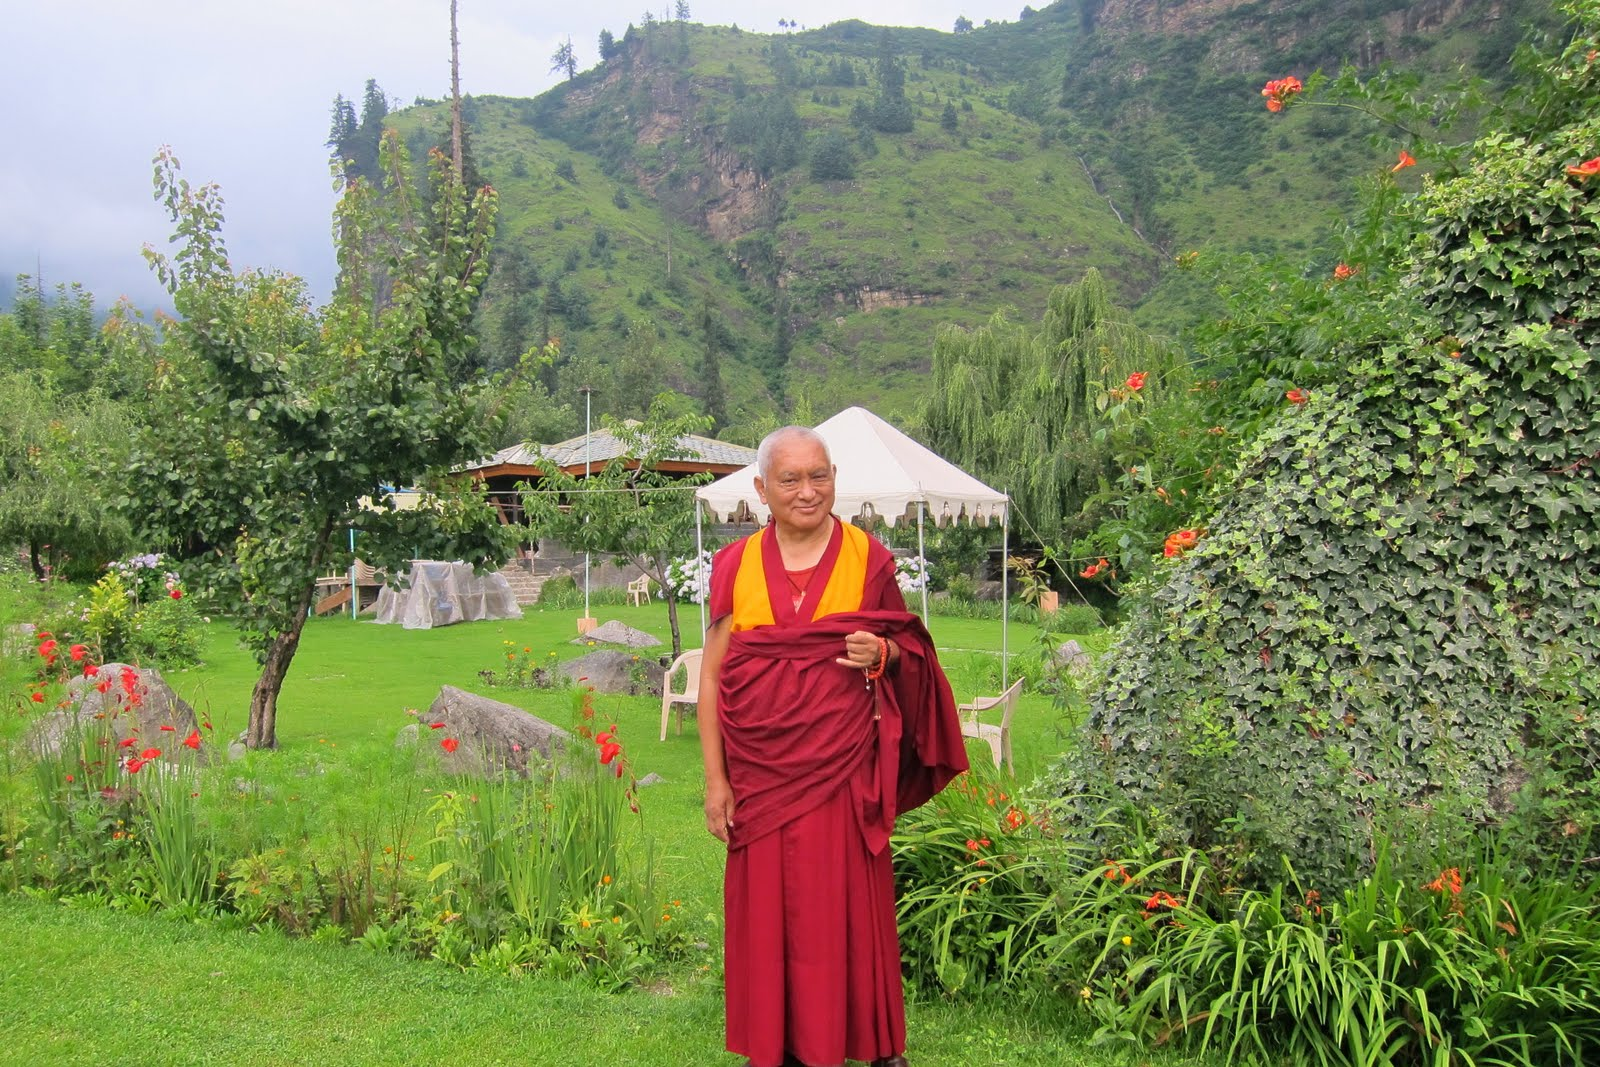 Rinpoche in Manali, India, enjoying the gardens. July, 2013. Photo Ven. Sarah Thresher